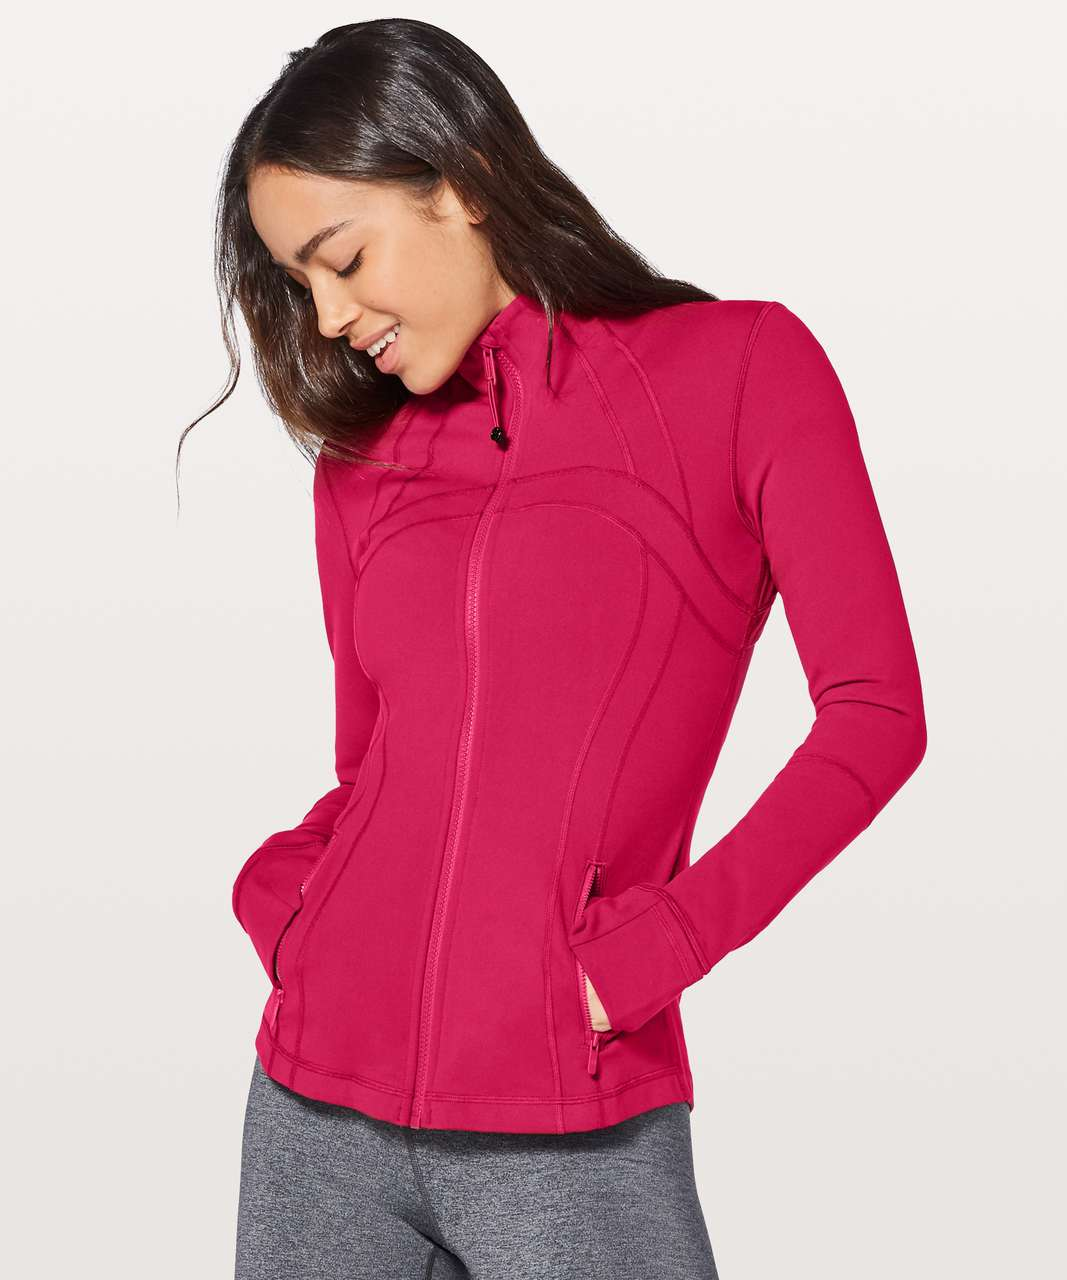 Lululemon Define Jacket - Ruby Red